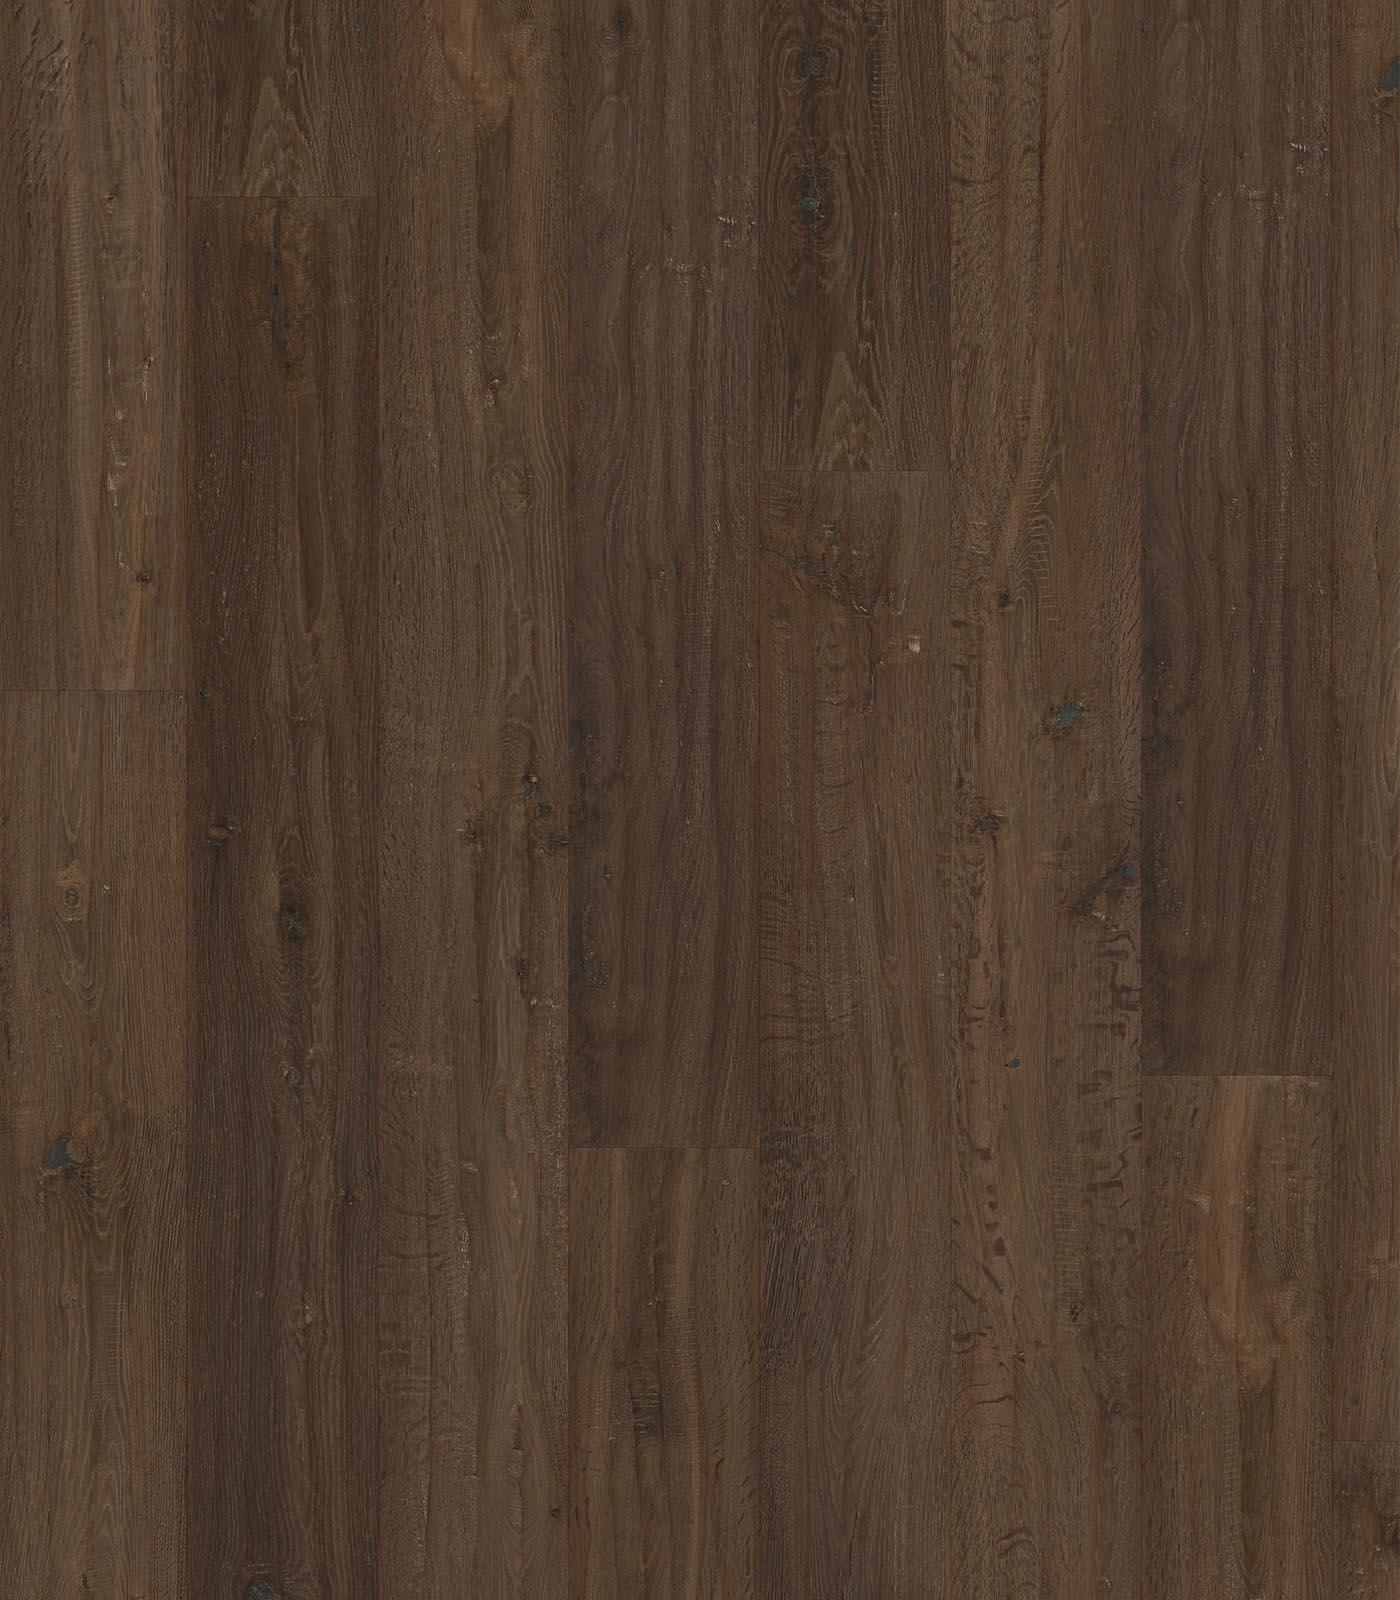 Blue Ridge-Antique Collection-European Oak floors-flat